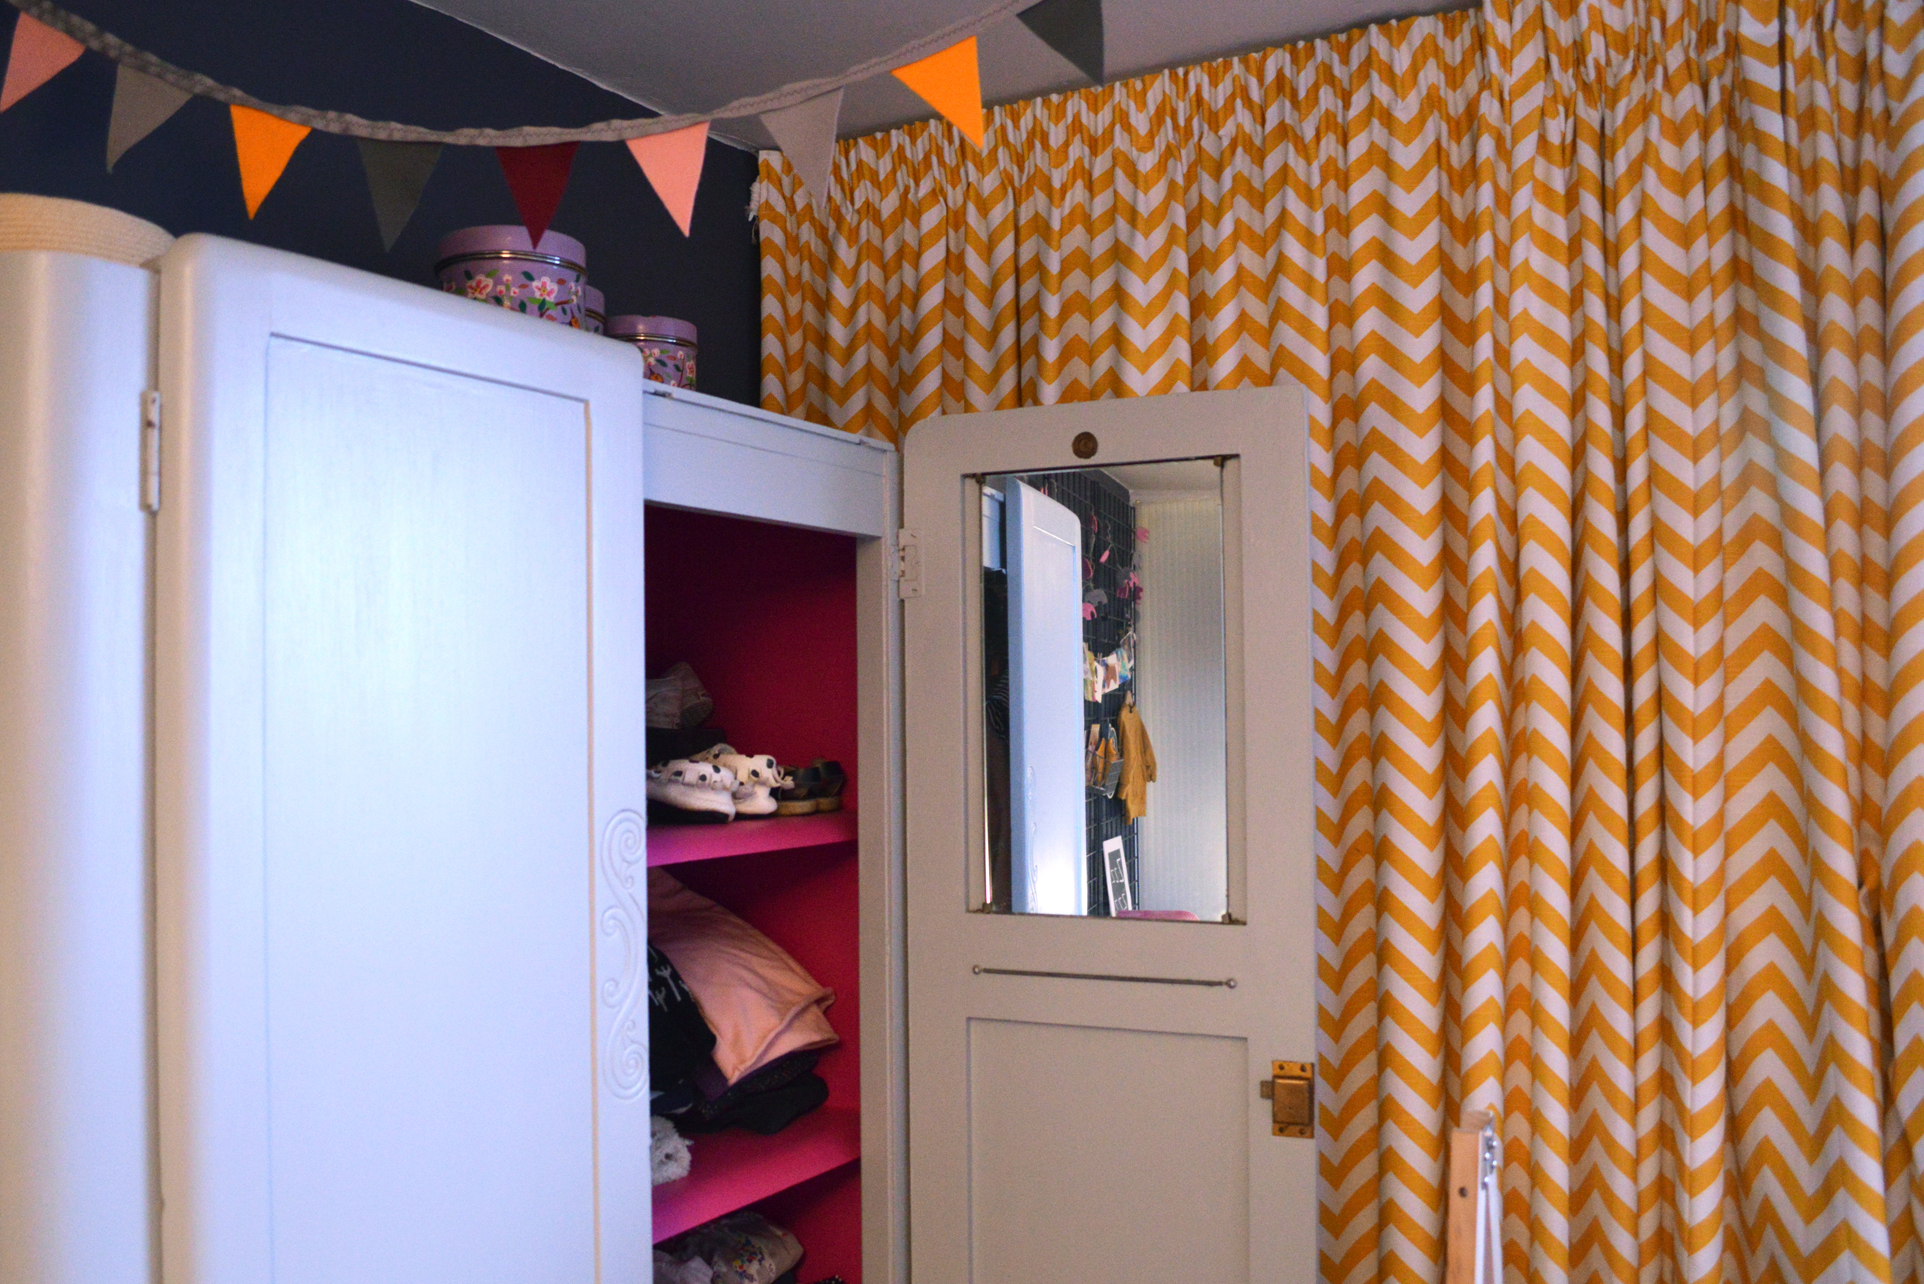 The hot pink charity-shop-find wardrobe interior is a cool concession to girliness